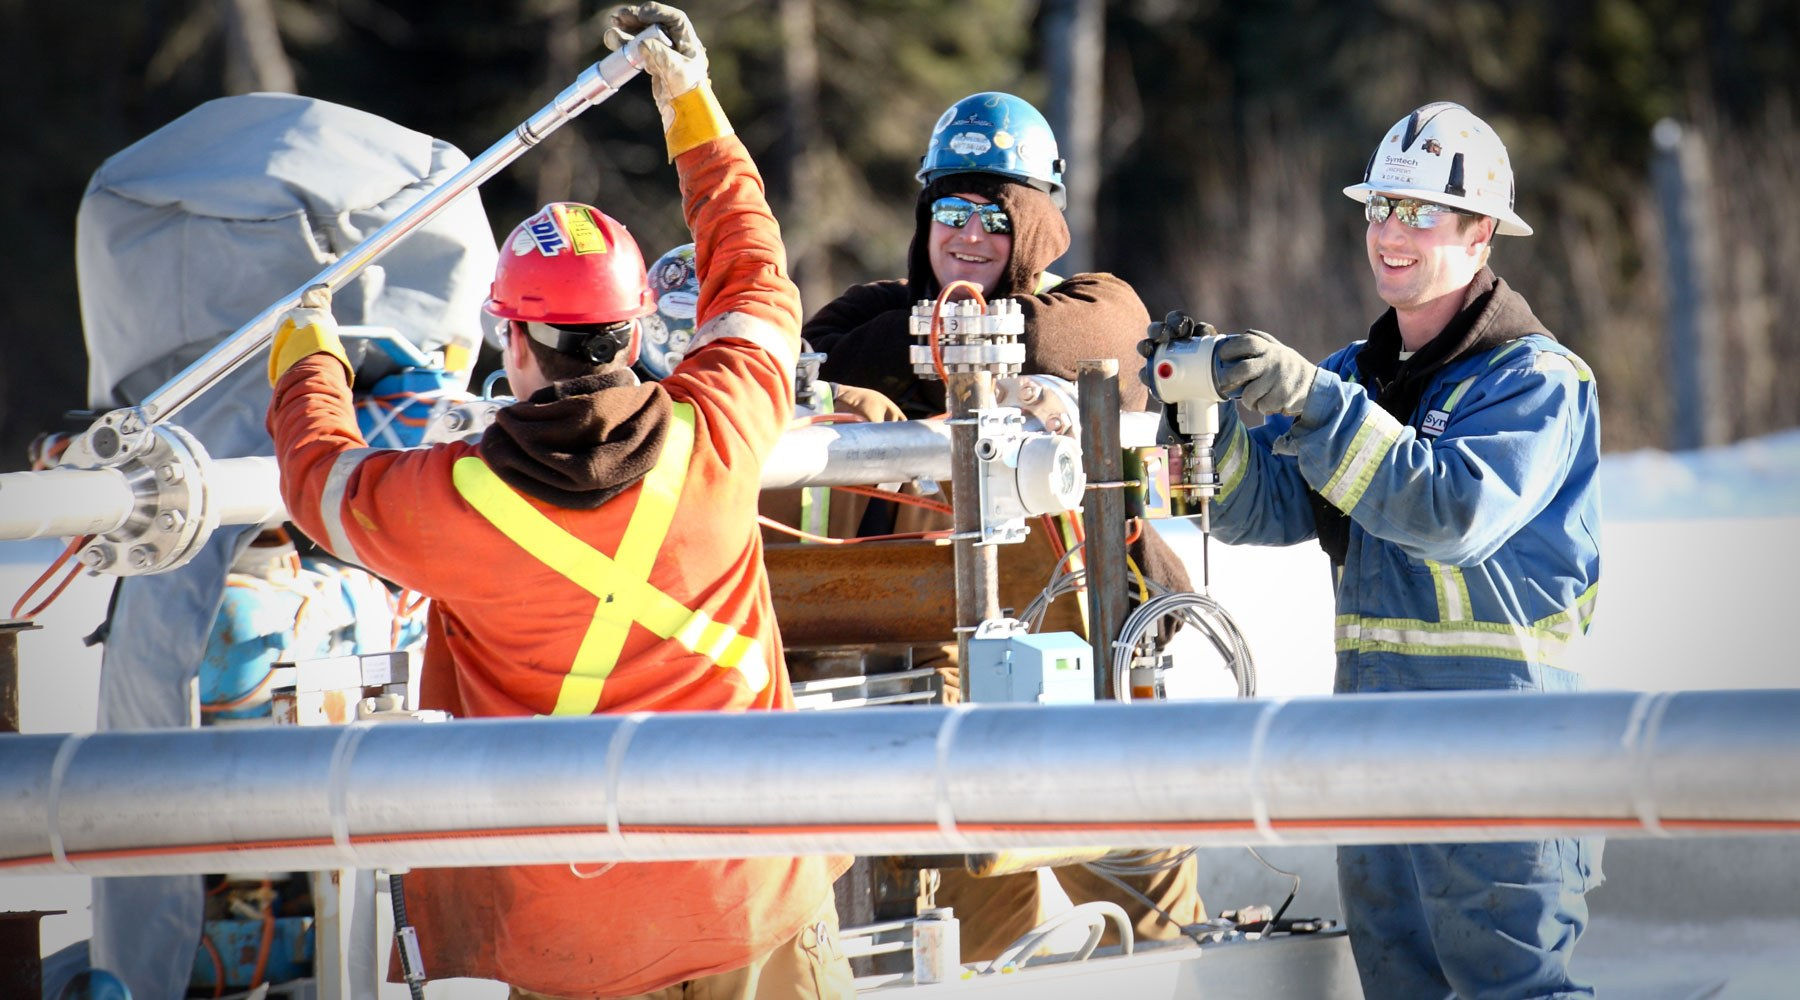 Three workers carrying out maintenance on pipeline equipment outdoors